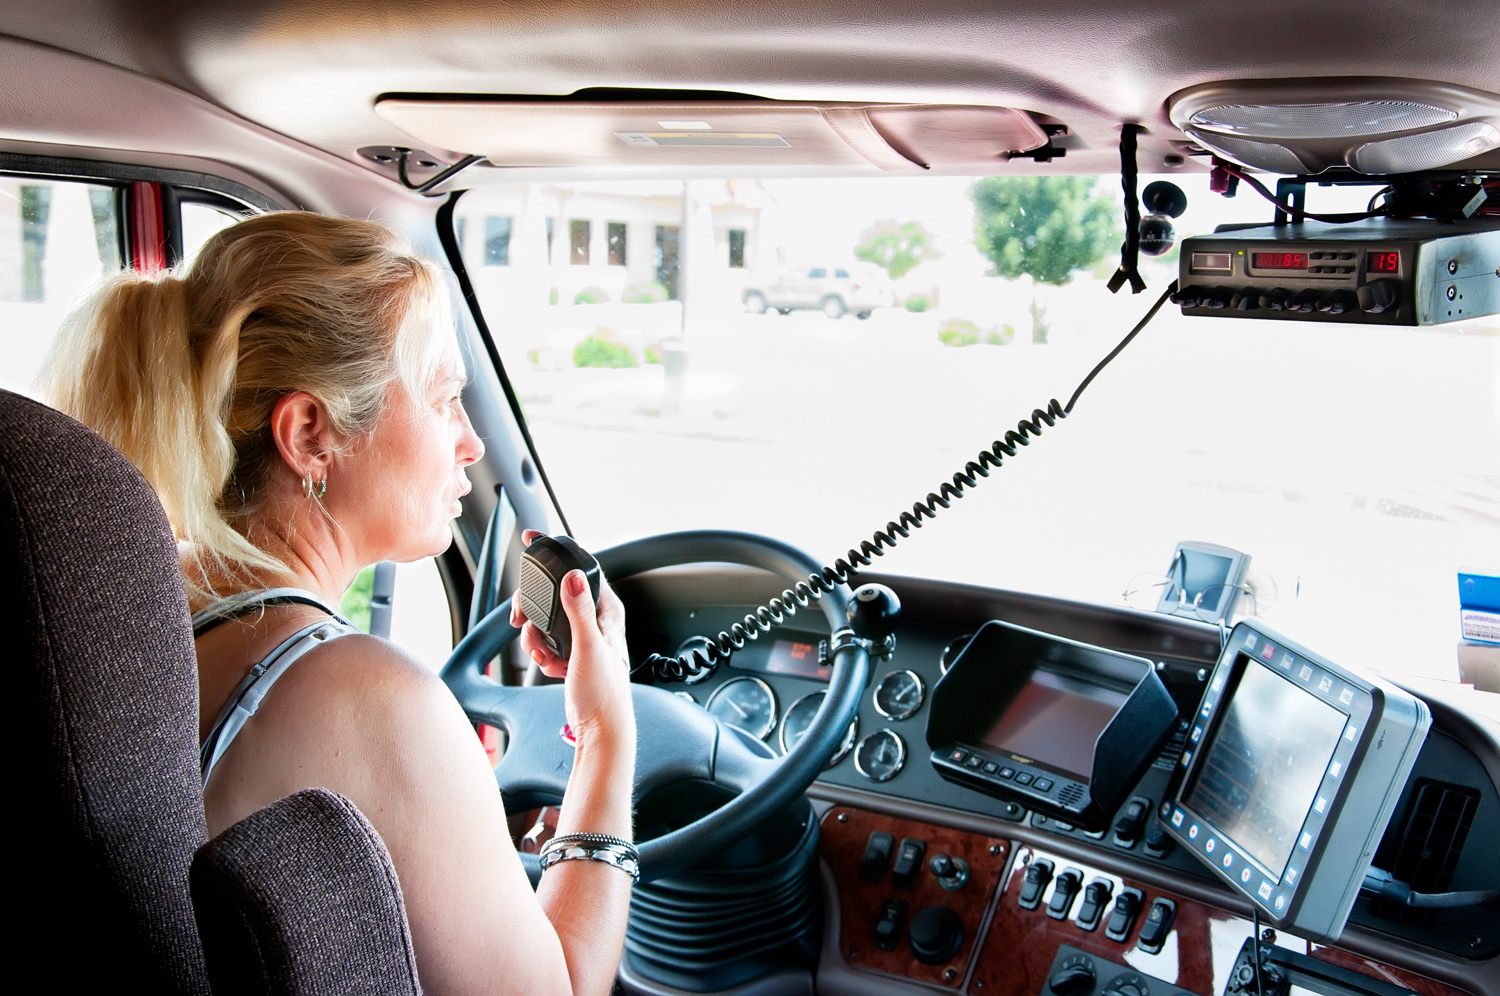 The Lead Pedal Podcast Focuses on Truck Driver Professionalism